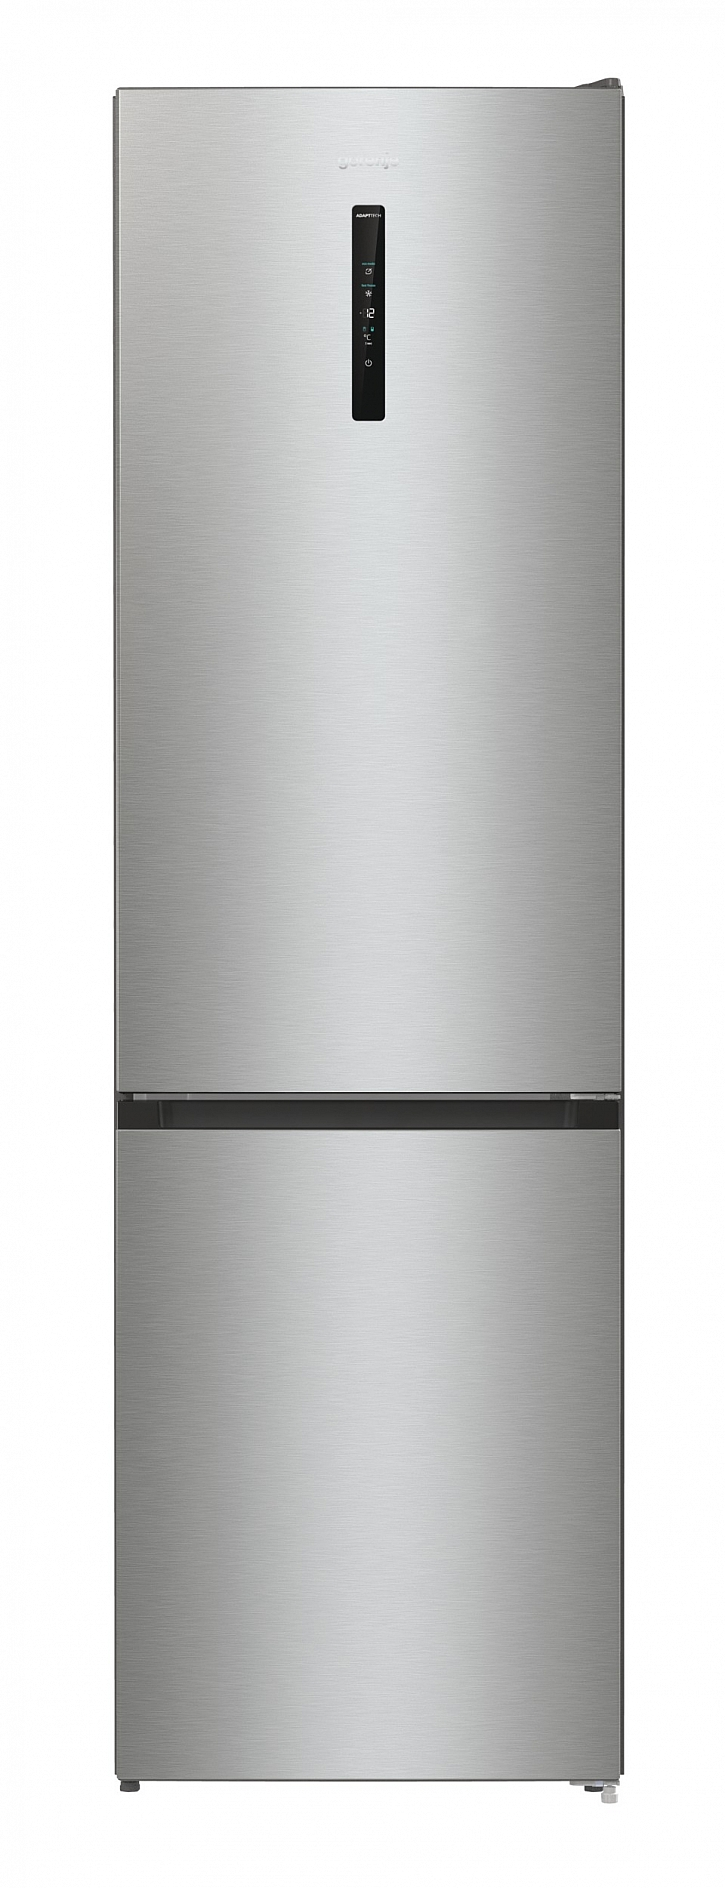 Gorenje_NRK6202AXL4_front-close